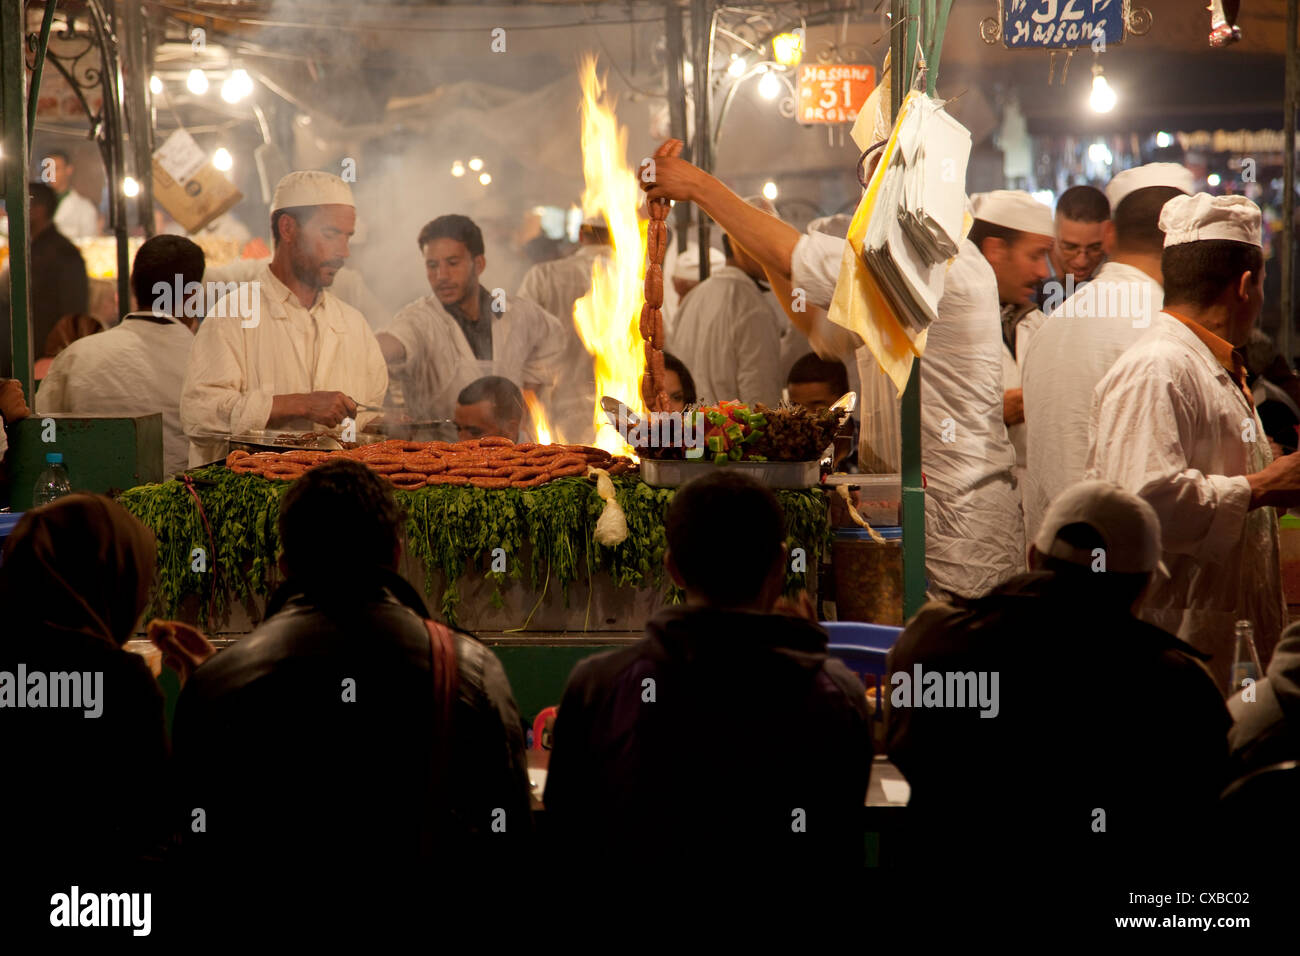 Market food stall, Place Jemaa El Fna, Marrakesh, Morocco, North Africa, Africa - Stock Image